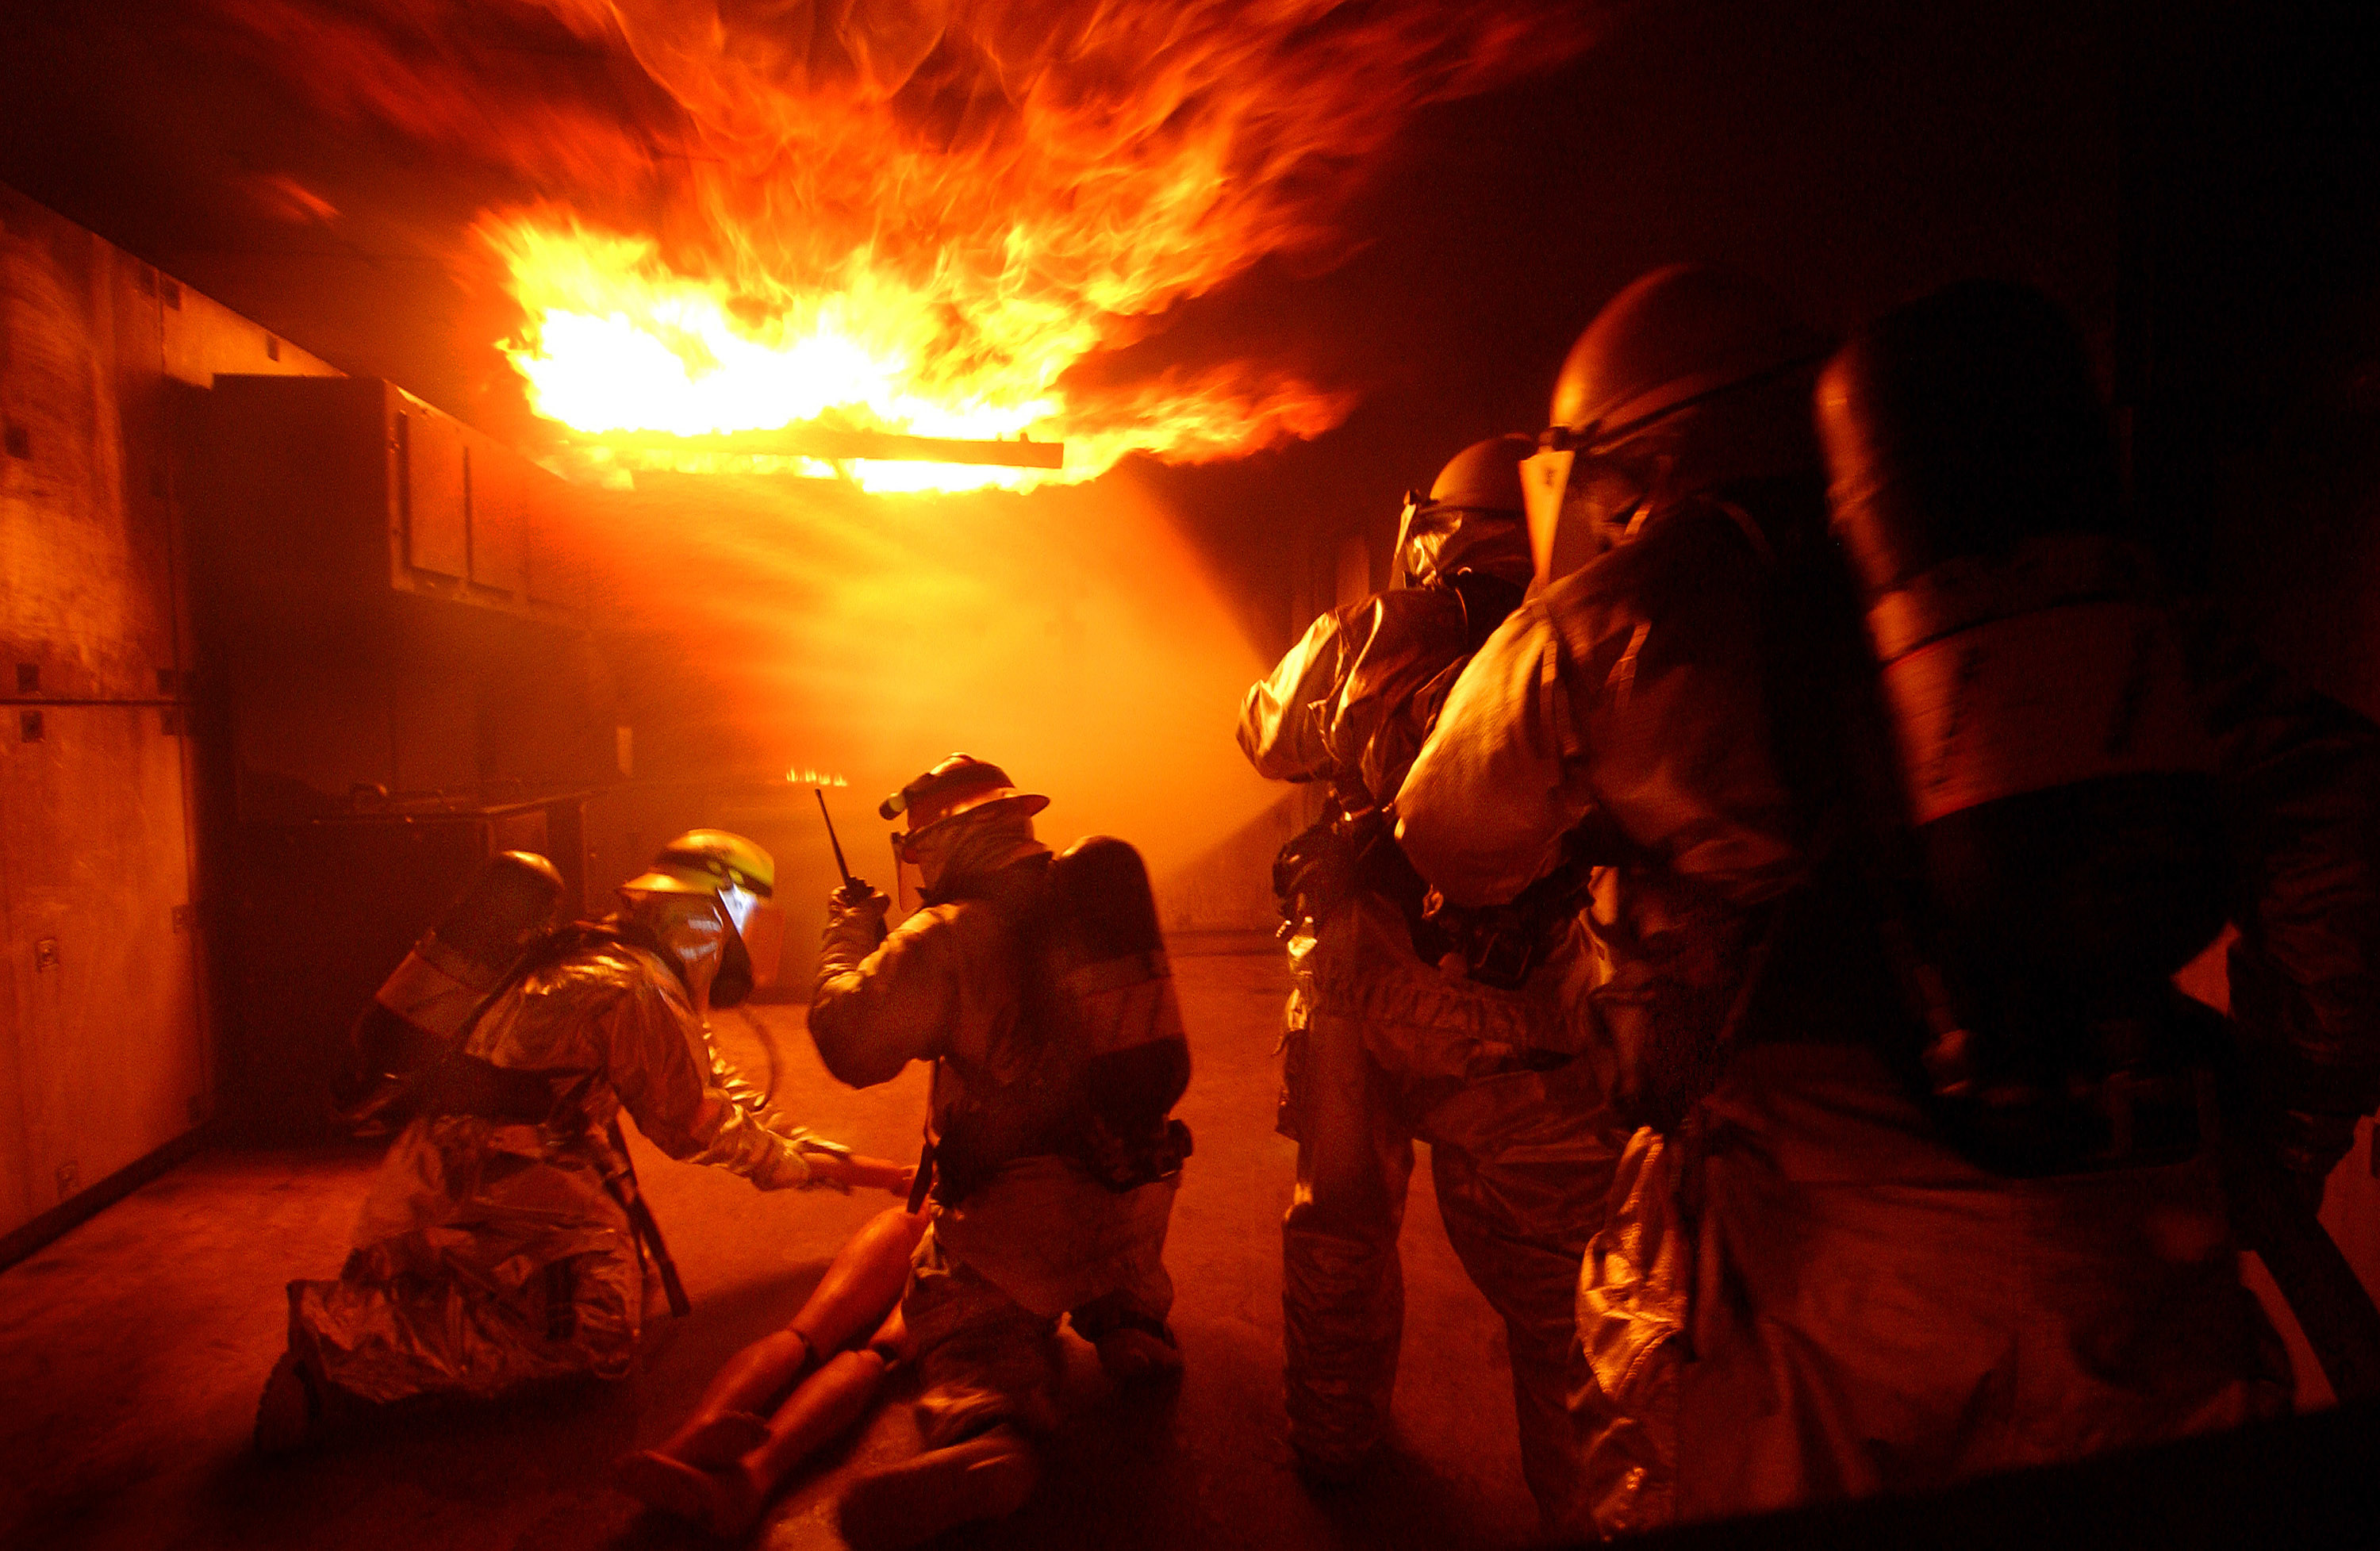 Res: 3000x1955, HD Wallpaper | Background Image ID:613203.  Men Firefighter